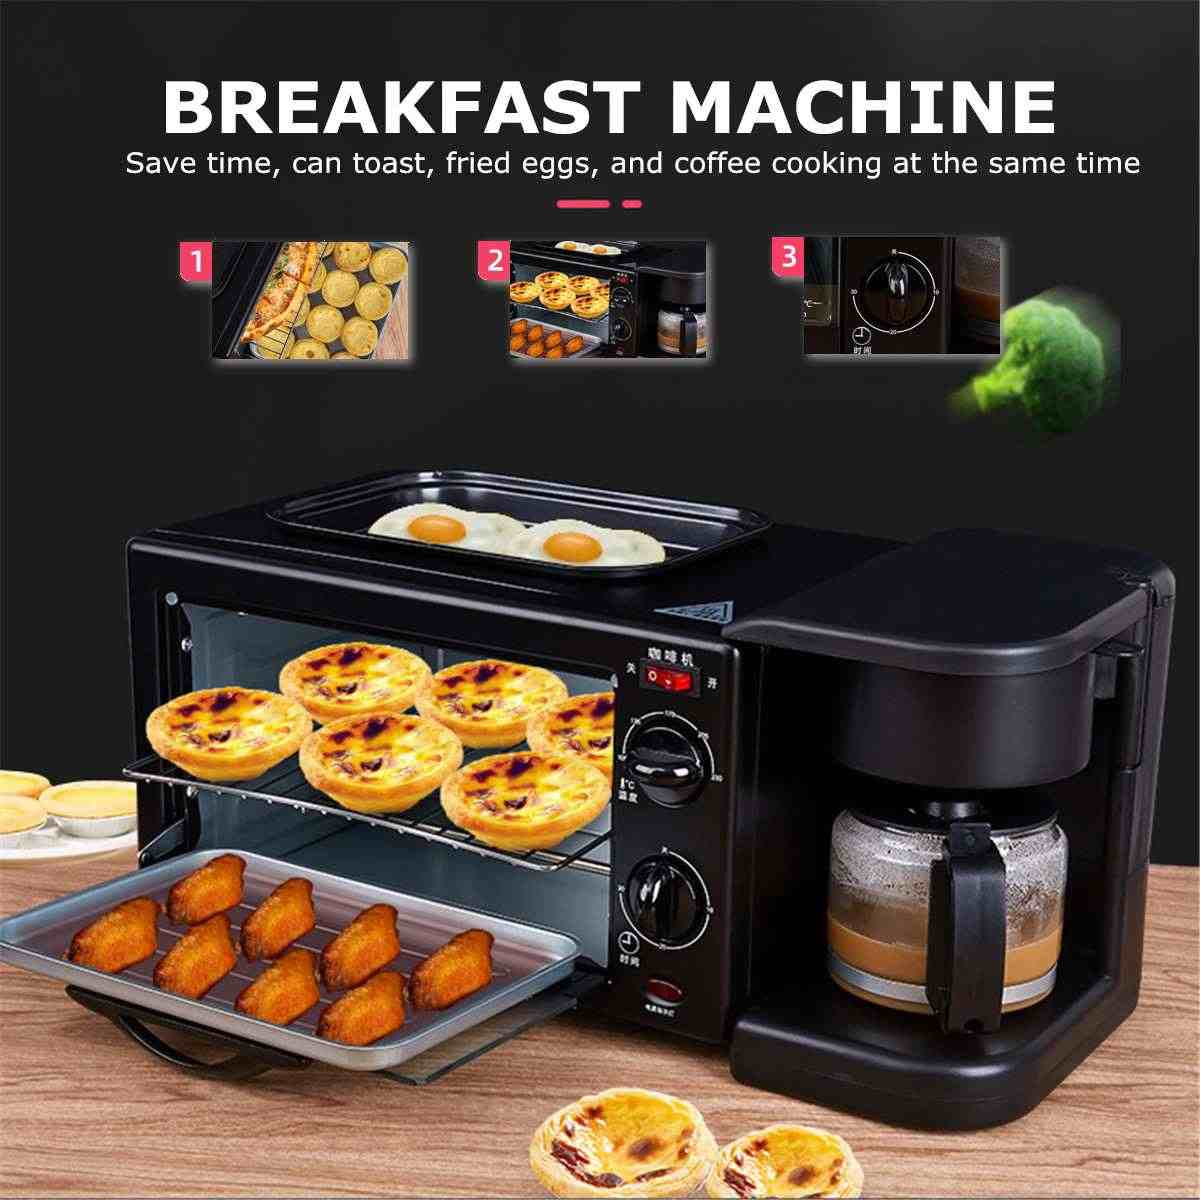 3 in 1 Home Breakfast Machine Coffee Maker Electric Oven Toaster Grill Pan  Bread Toaster | Lazada PH